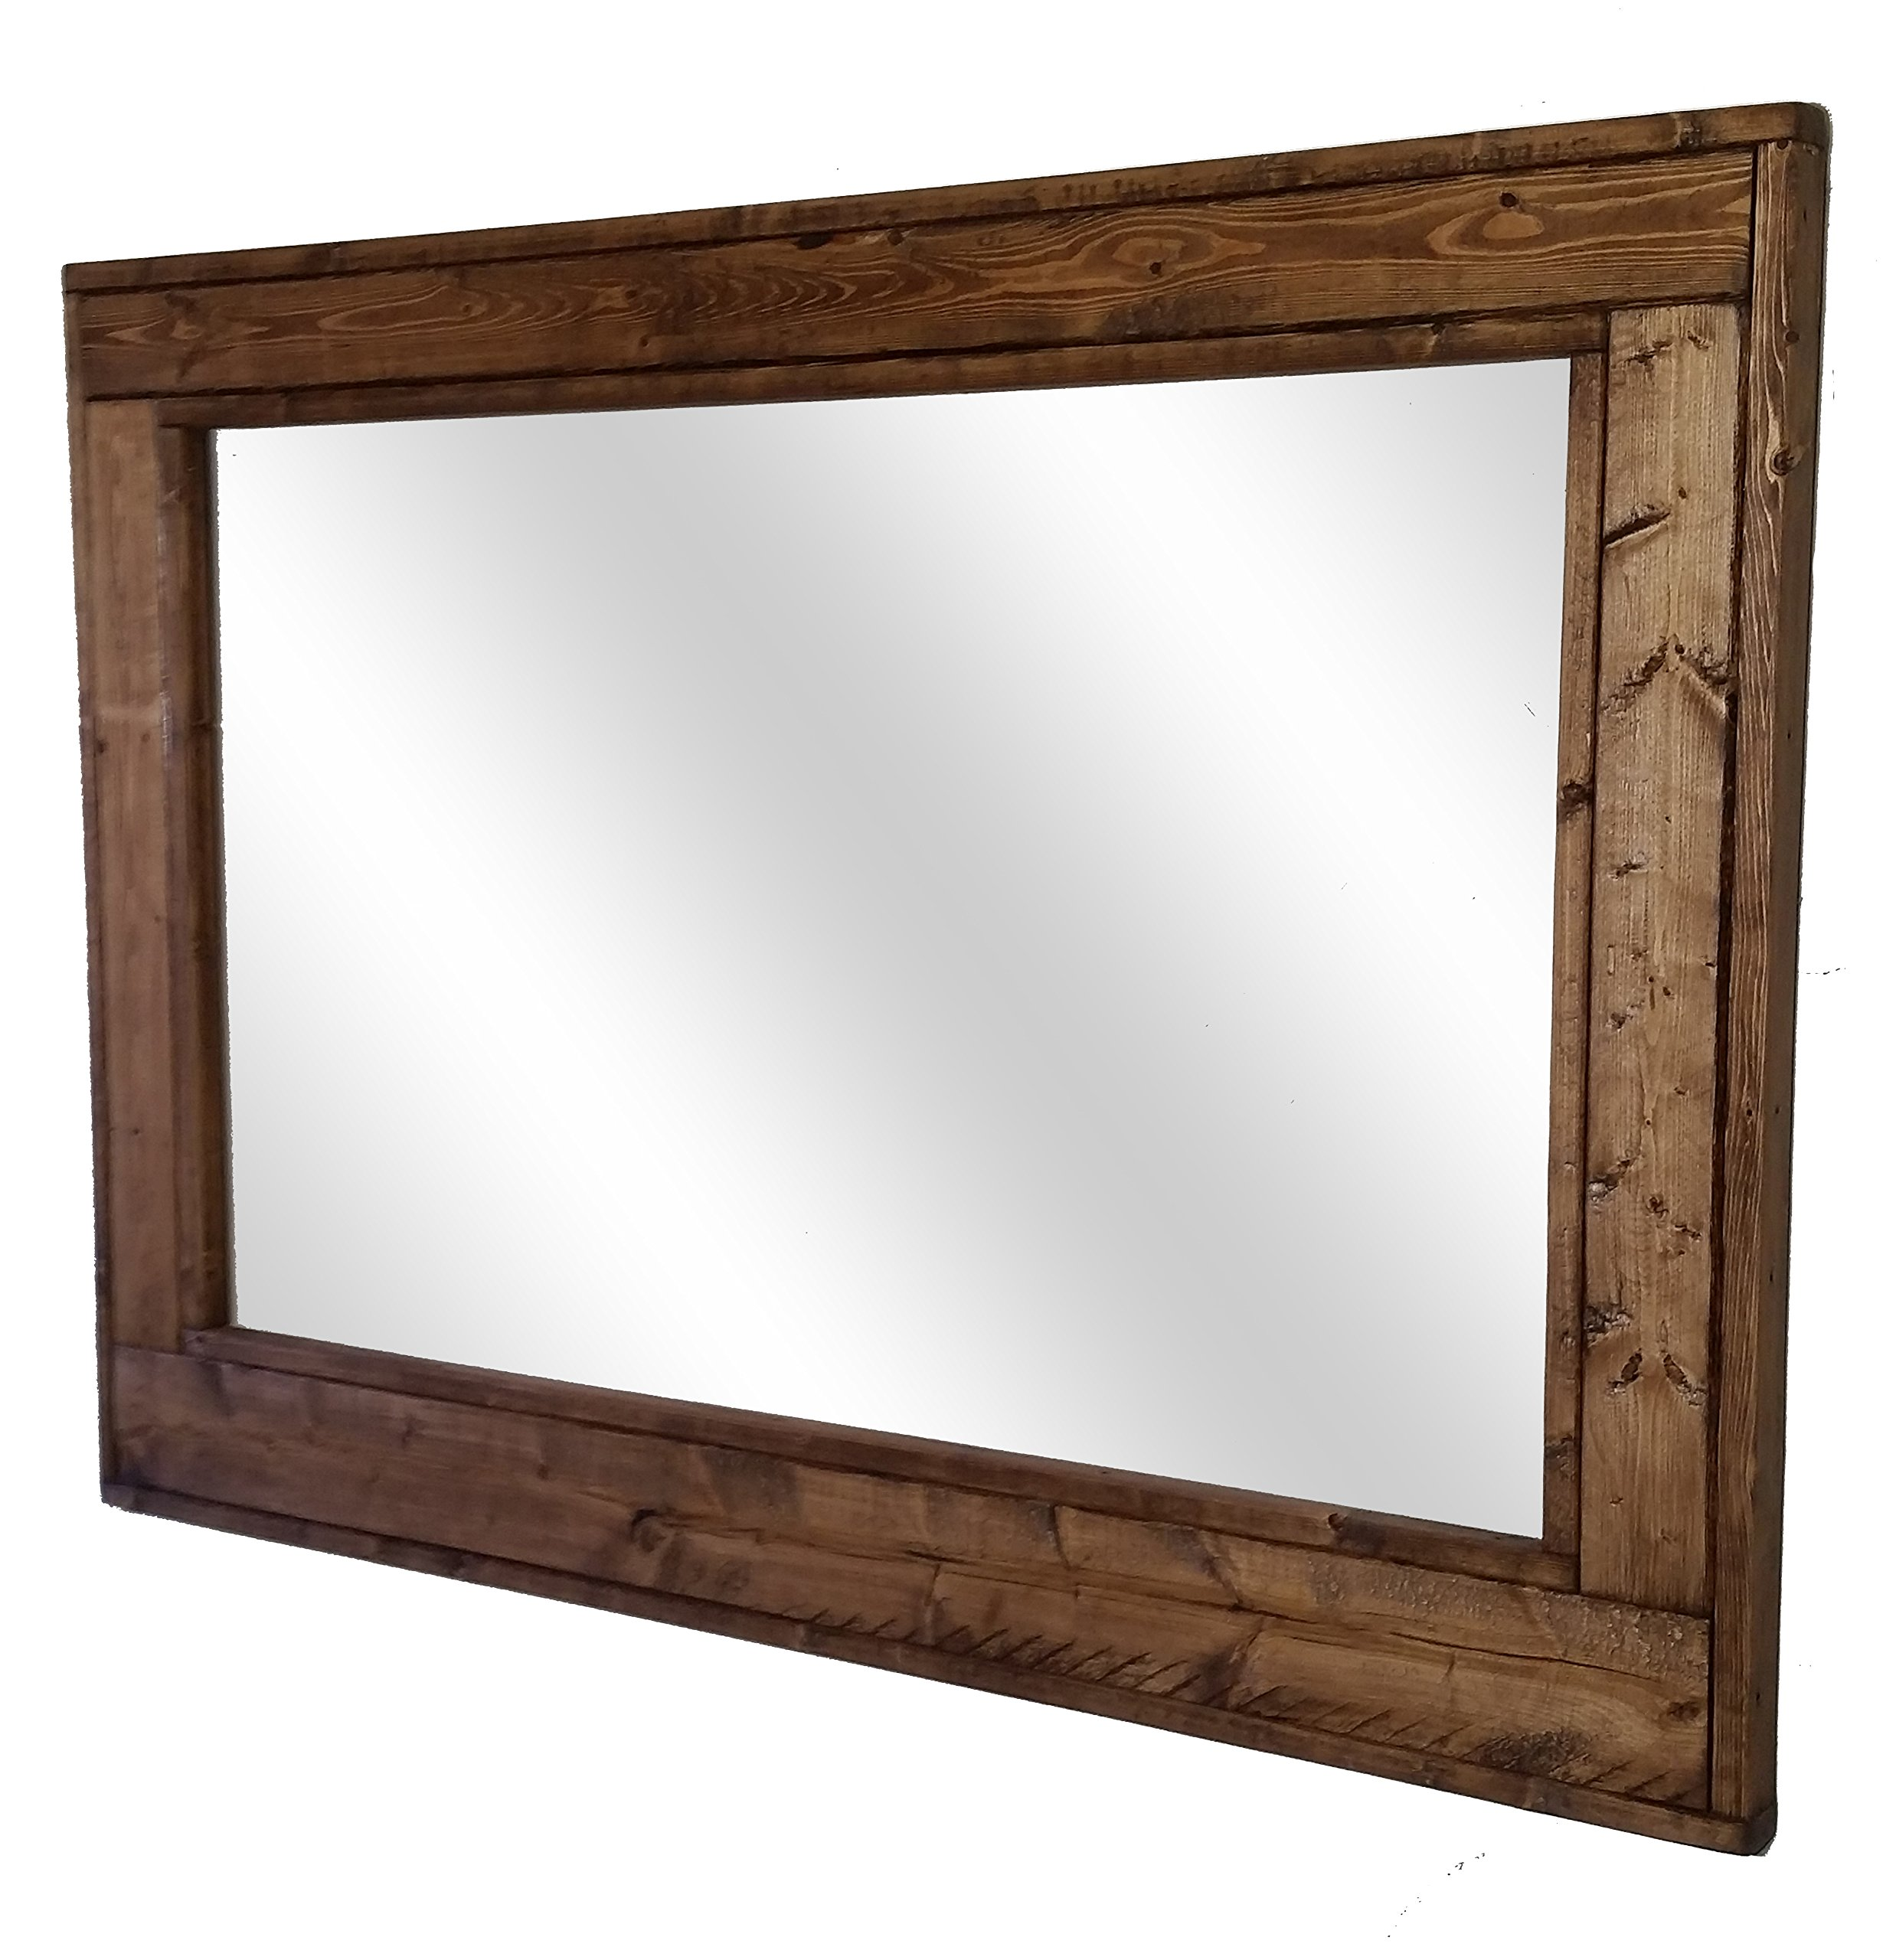 Herringbone 42 x 30 Horizontal Framed Mirror Stained in Special Walnut - Reclaimed Wood Mirror - Large Wall Mirror - Rustic Modern Home - Home Decor - Mirror - Housewares by Renewed Decor